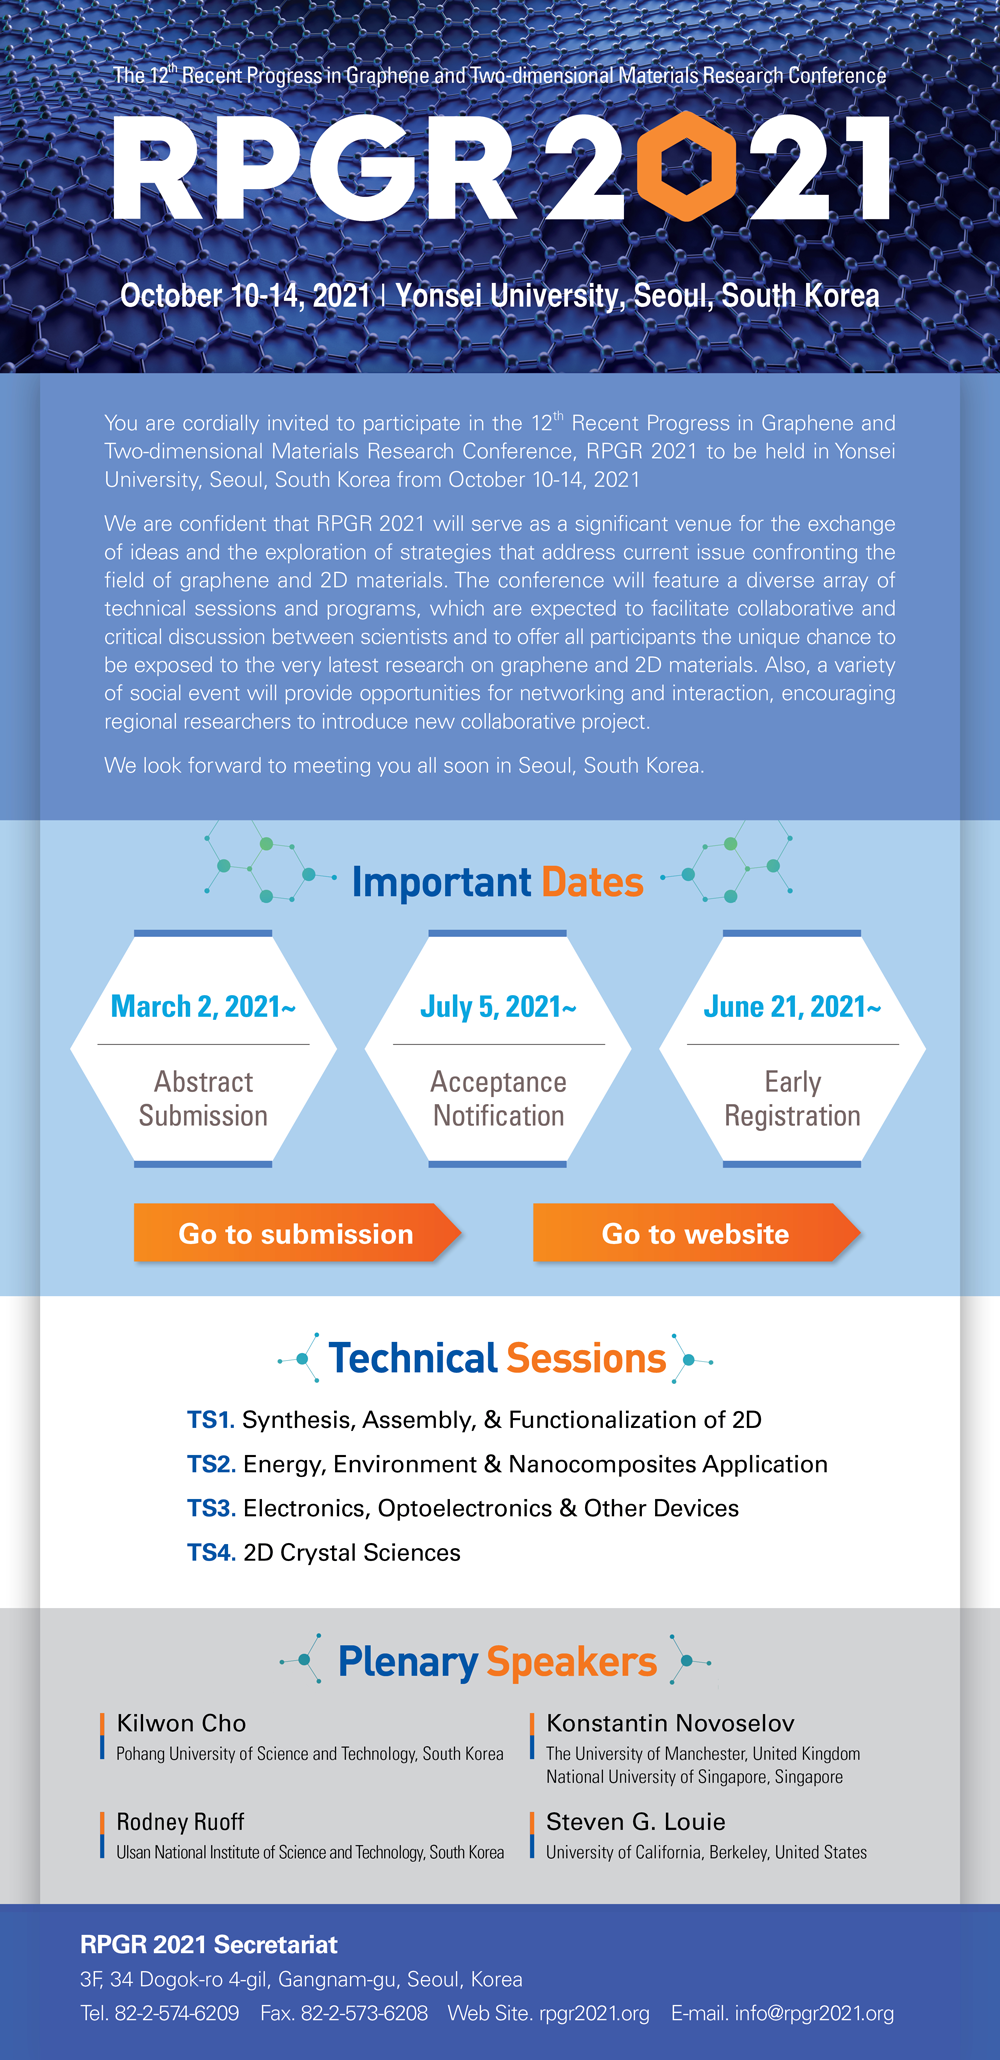 RPGR-2021-Call-for-Abstracts.png